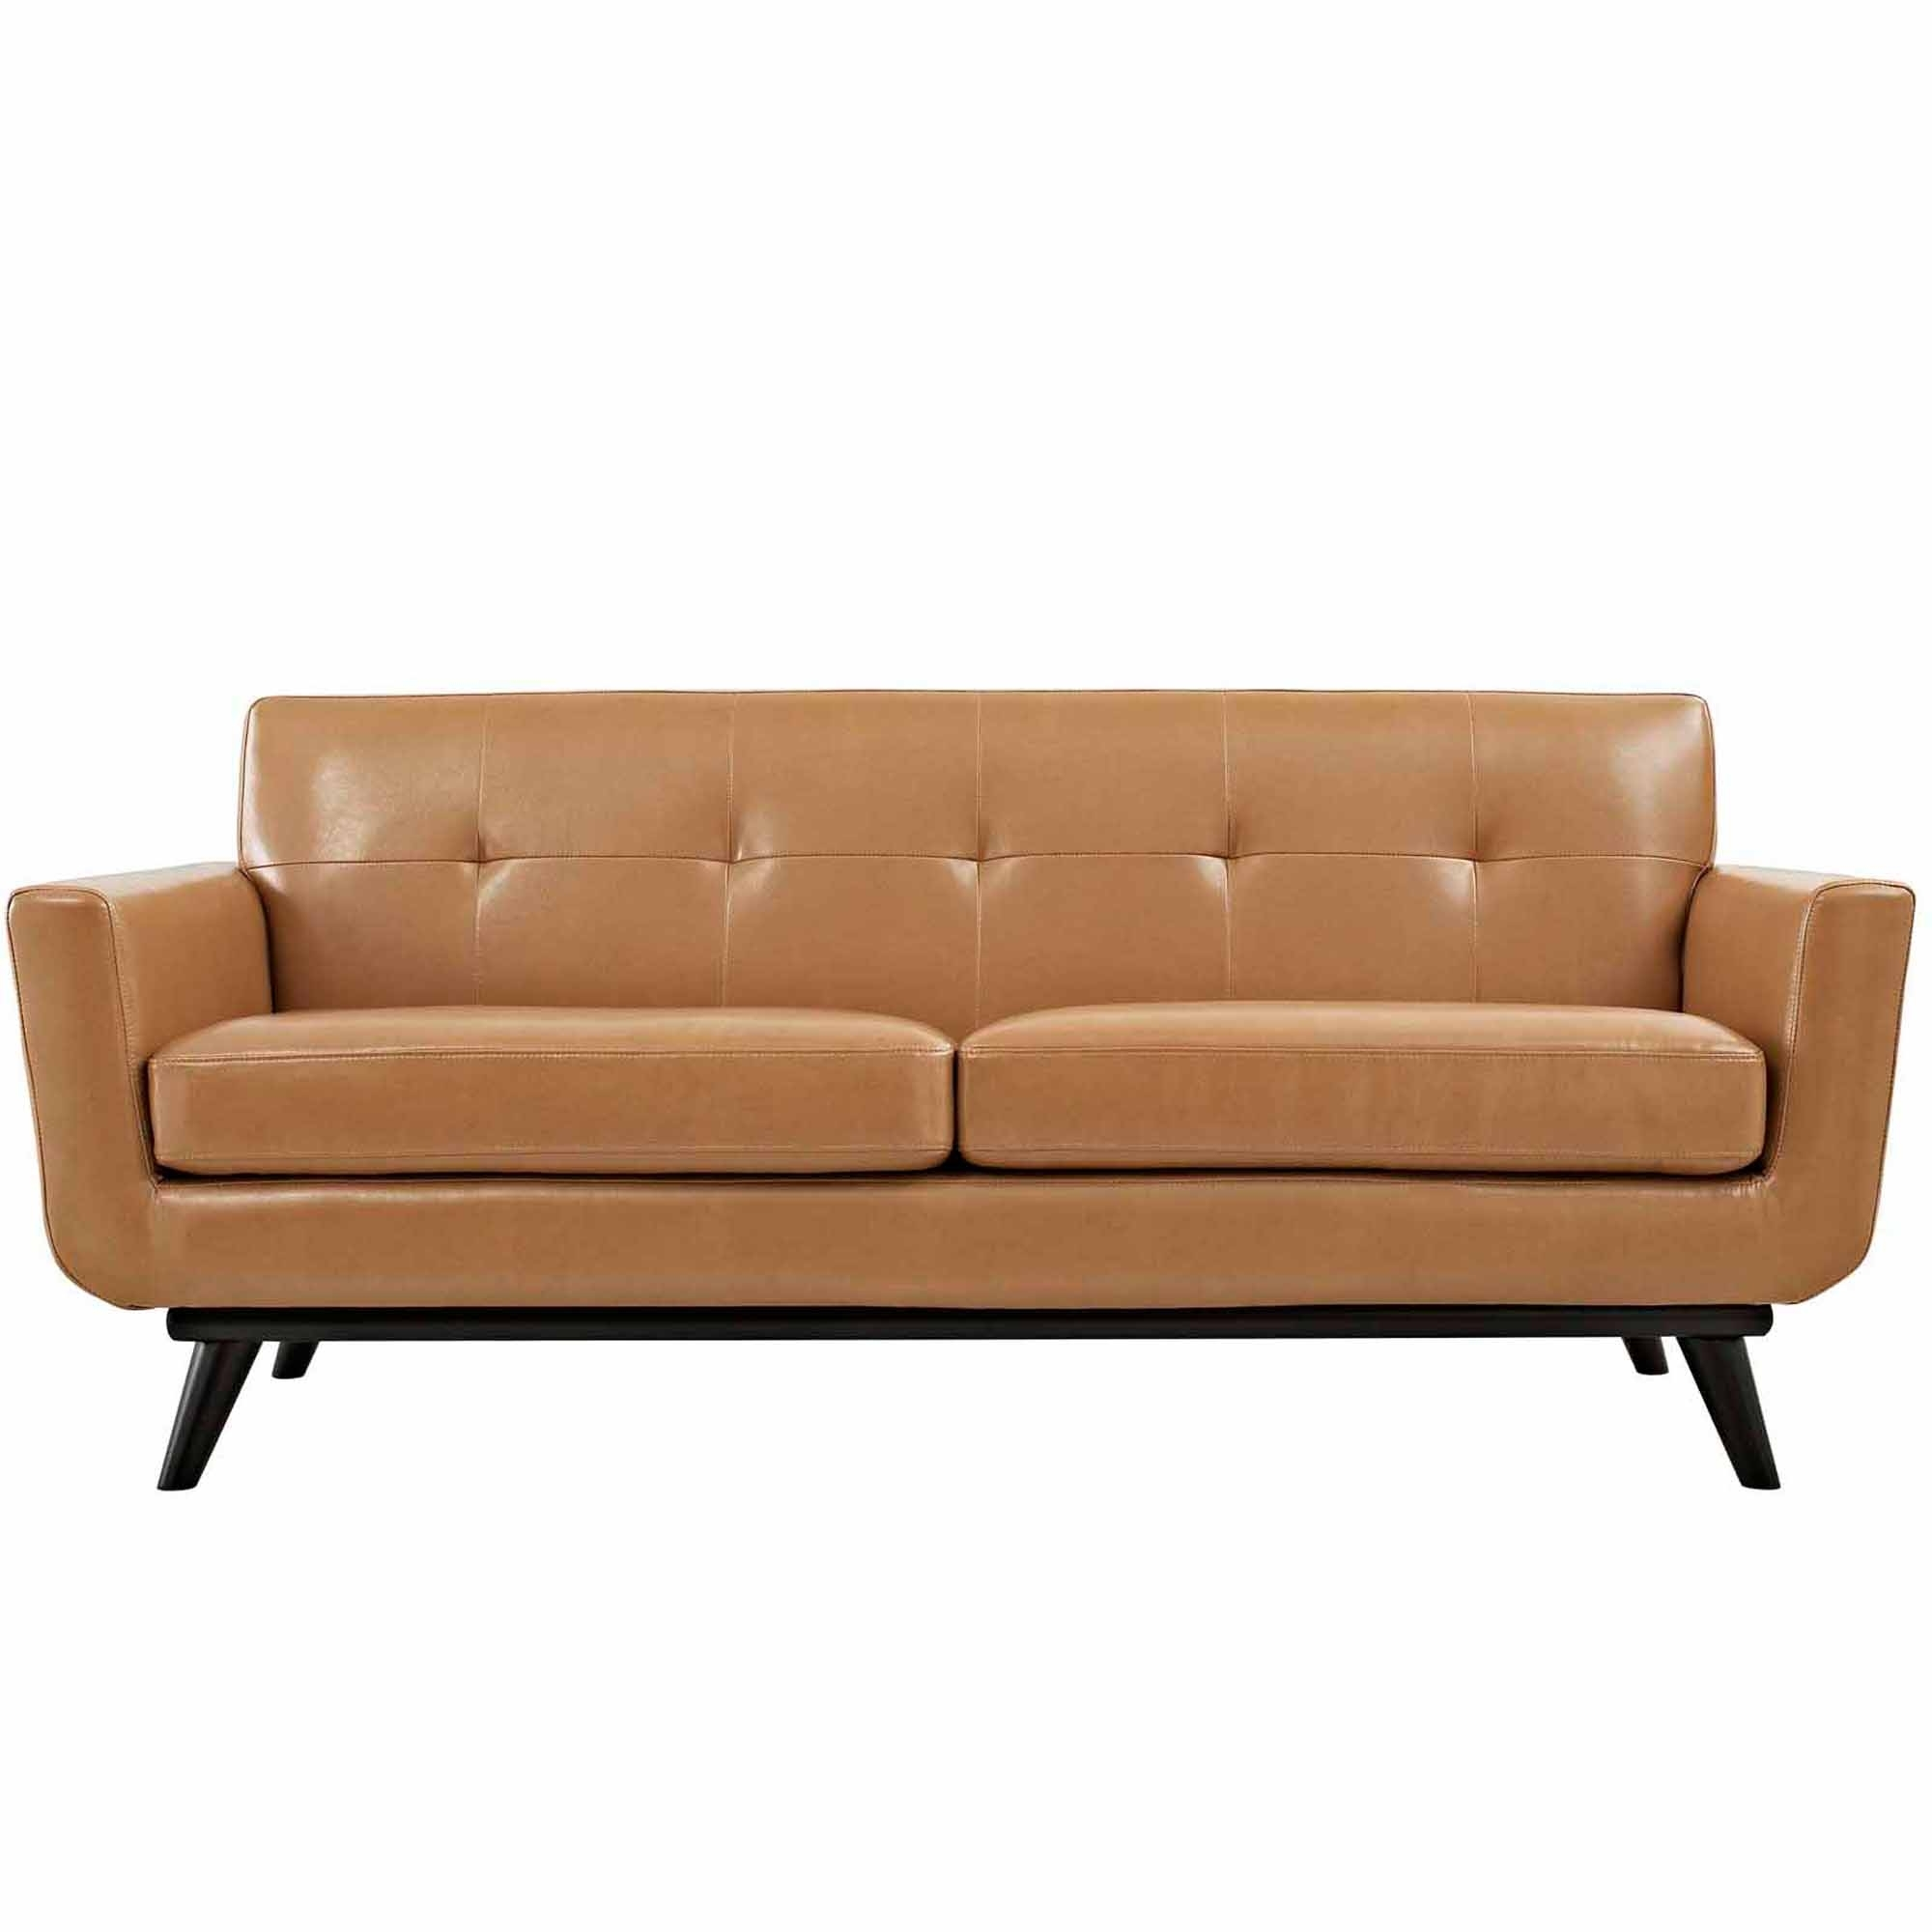 sofas low cost tesco colorado leather sofa bed 10 collection of nanaimo sectional ideas